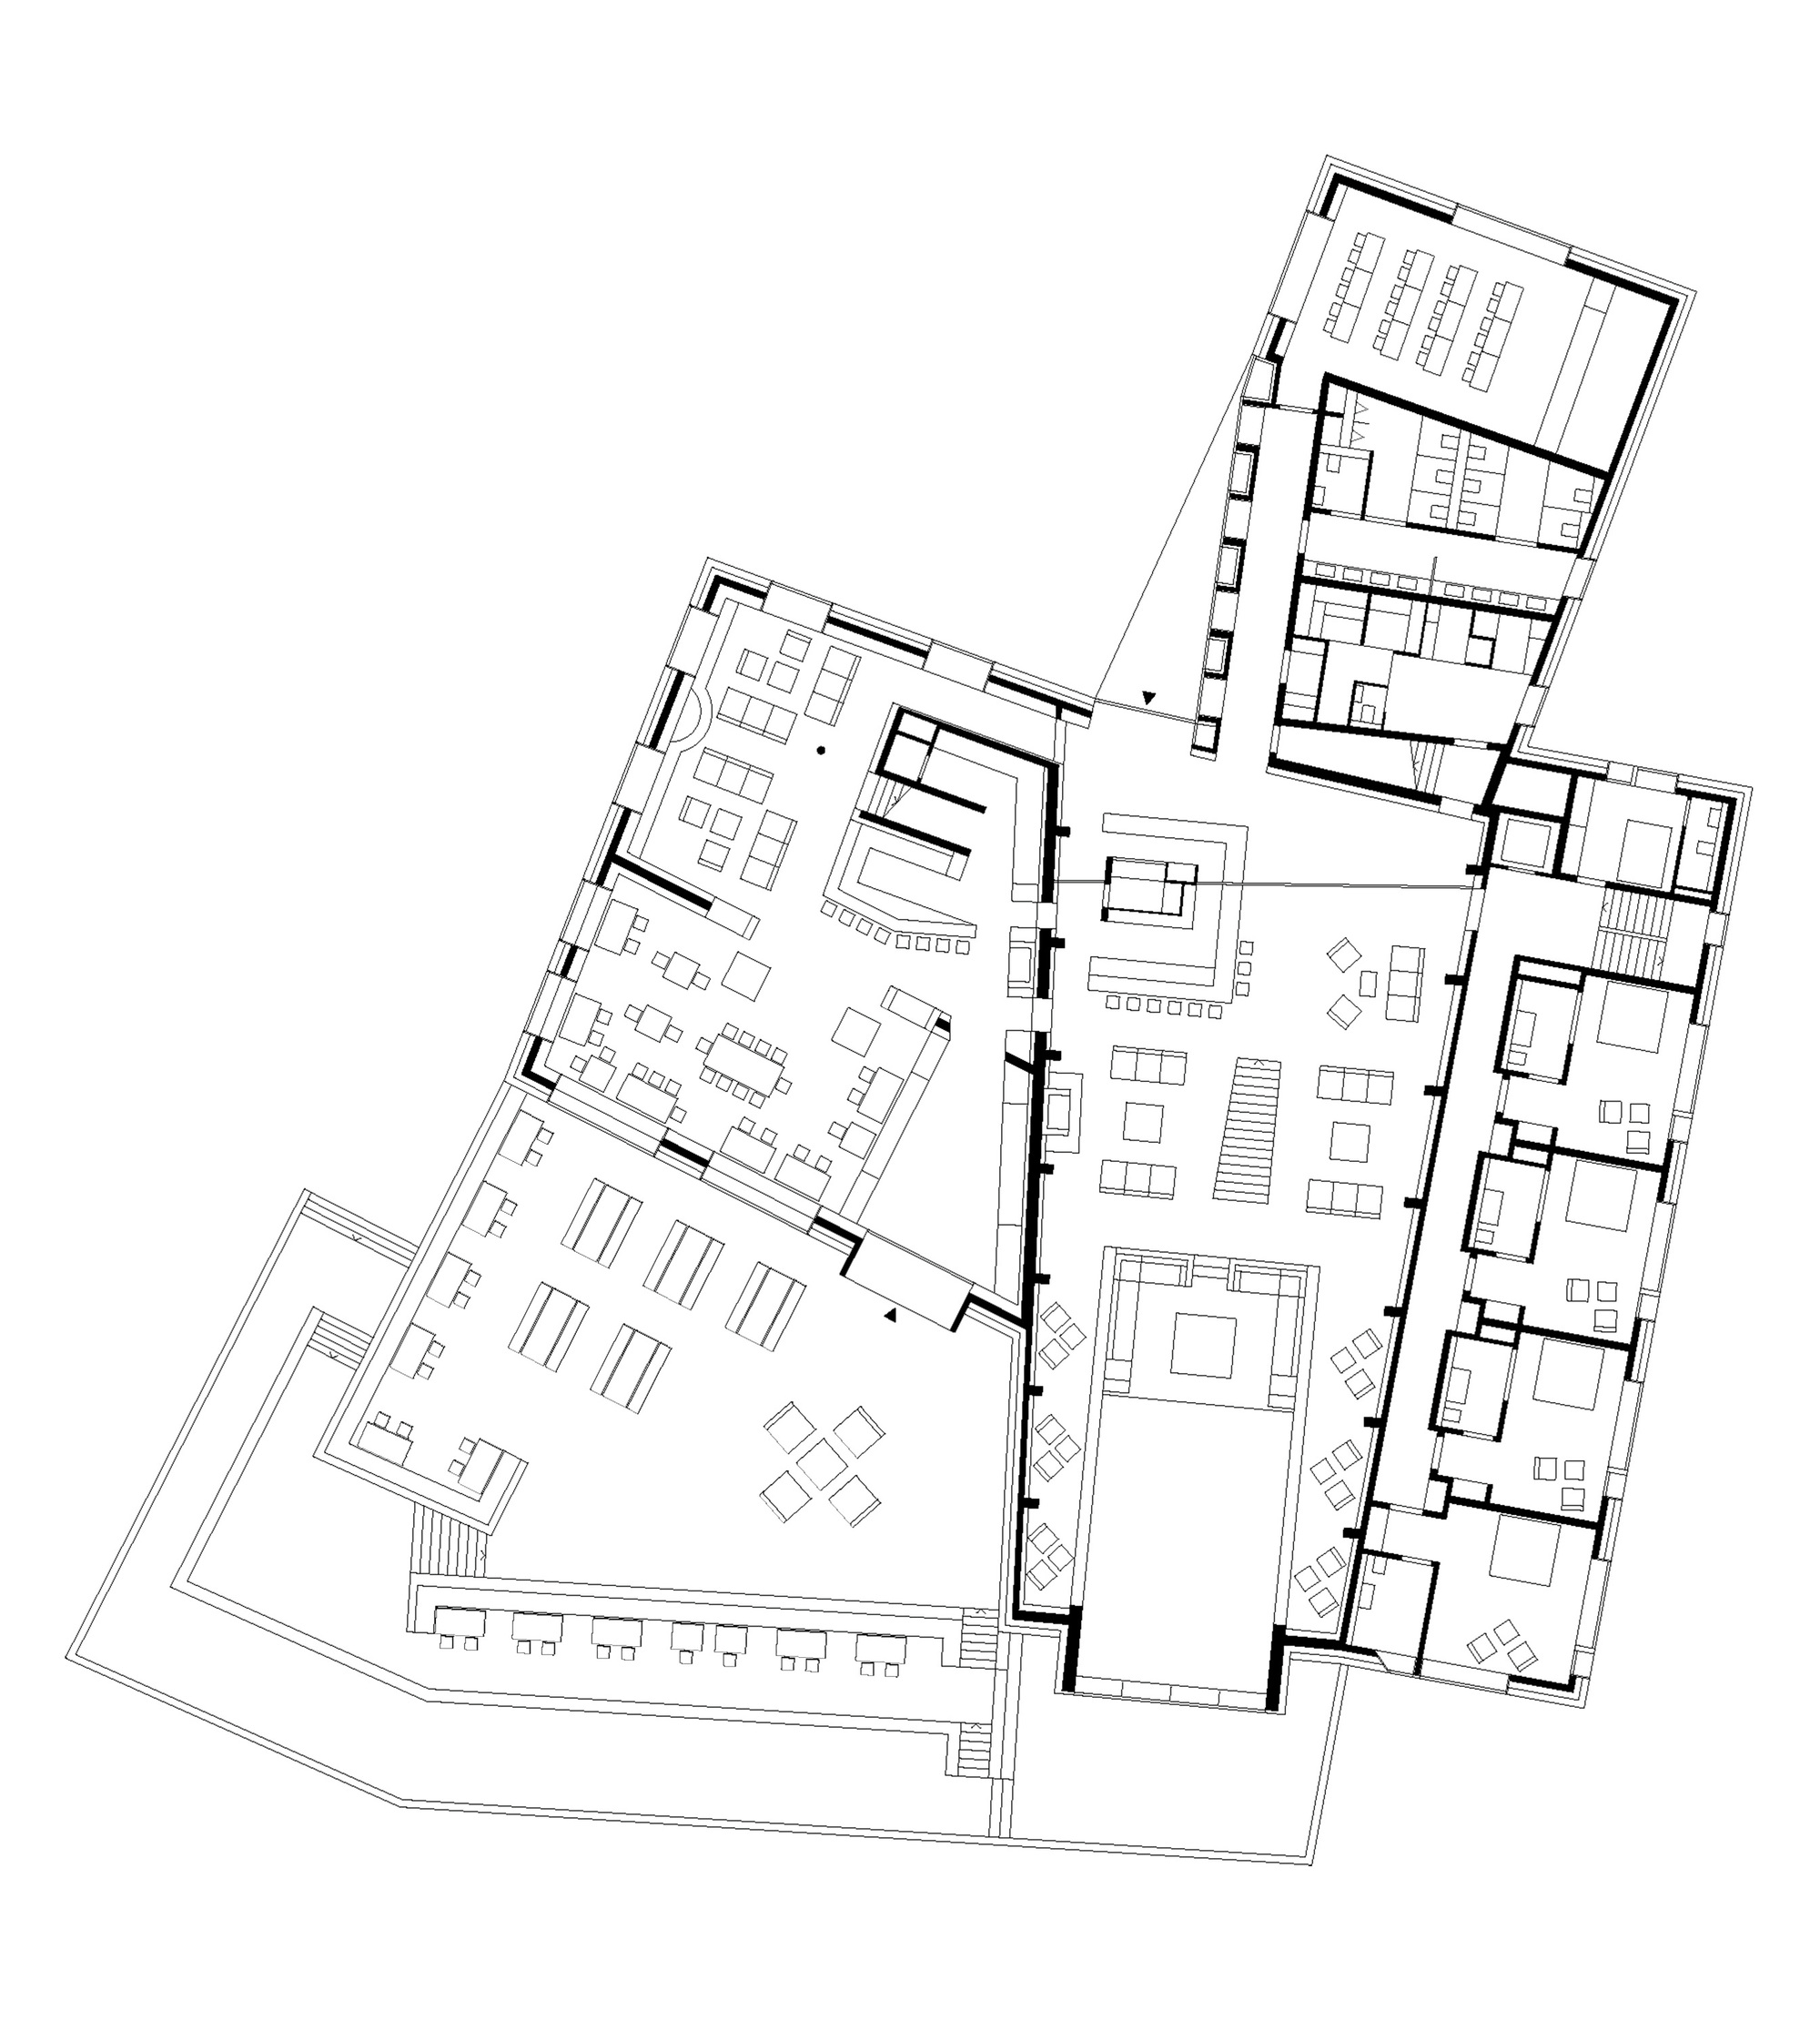 Gallery of chetzeron hotel actescollectifs architectes 30 for Hotel plan design